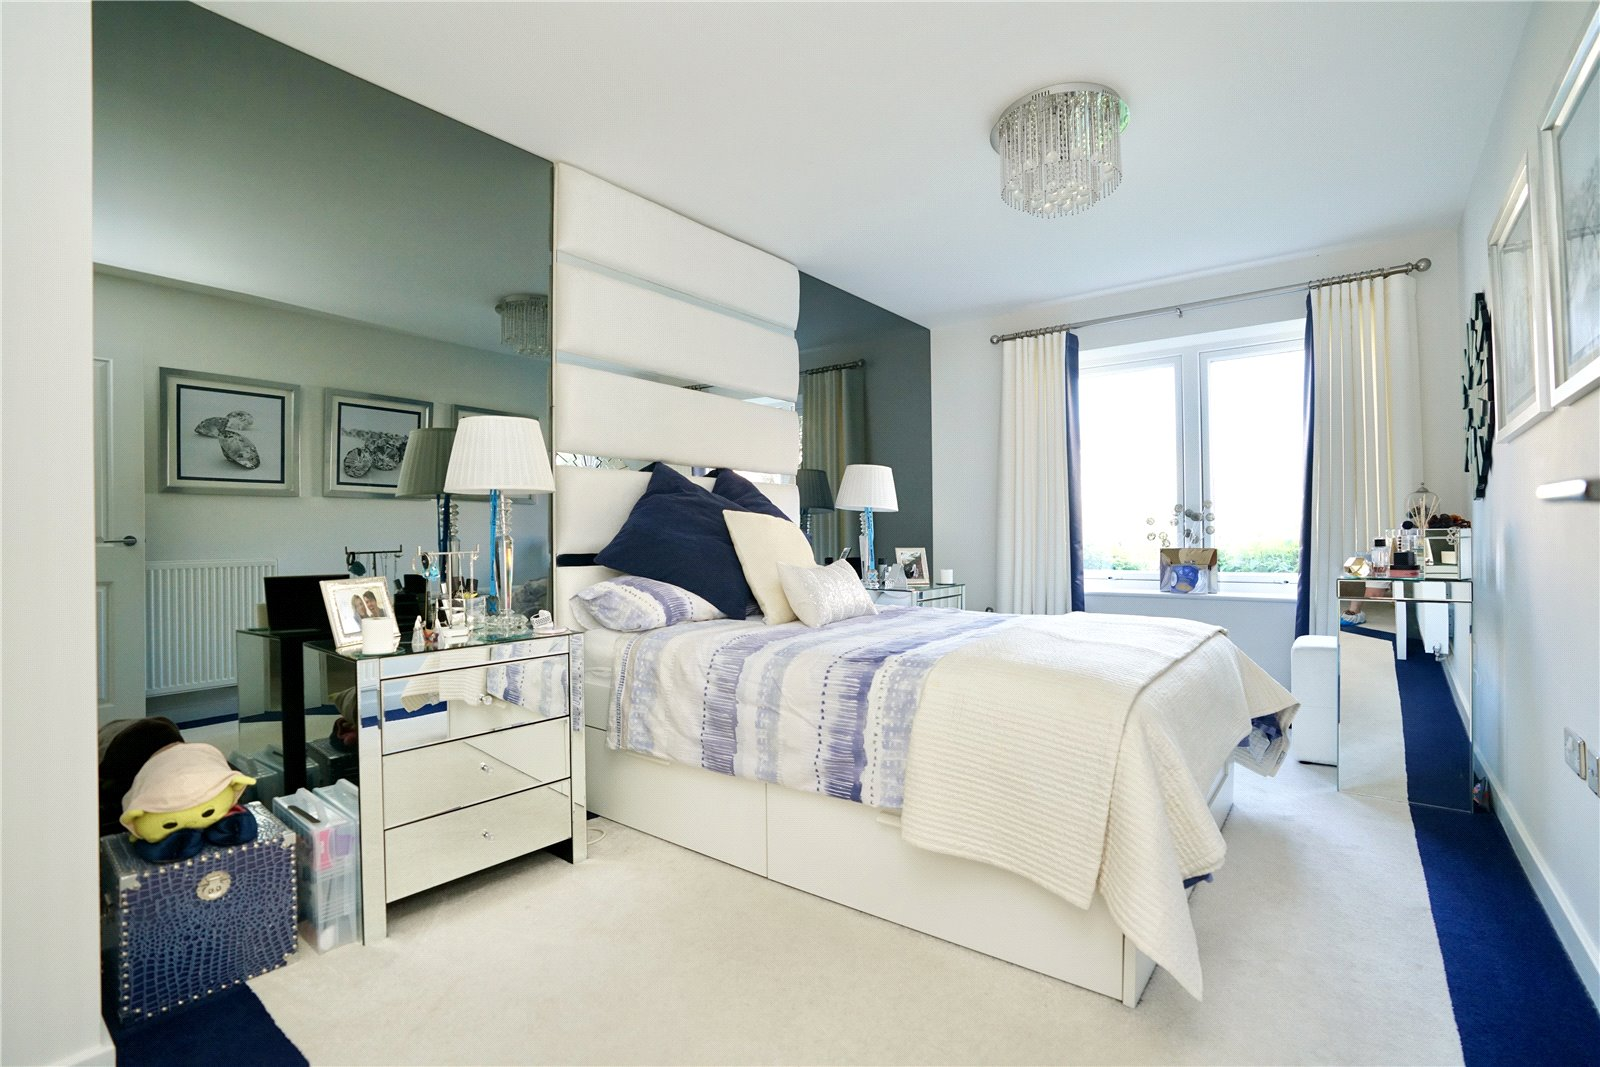 2 bed apartment for sale in Little Paxton, Red Admiral Court, PE19 6BU - Property Image 1